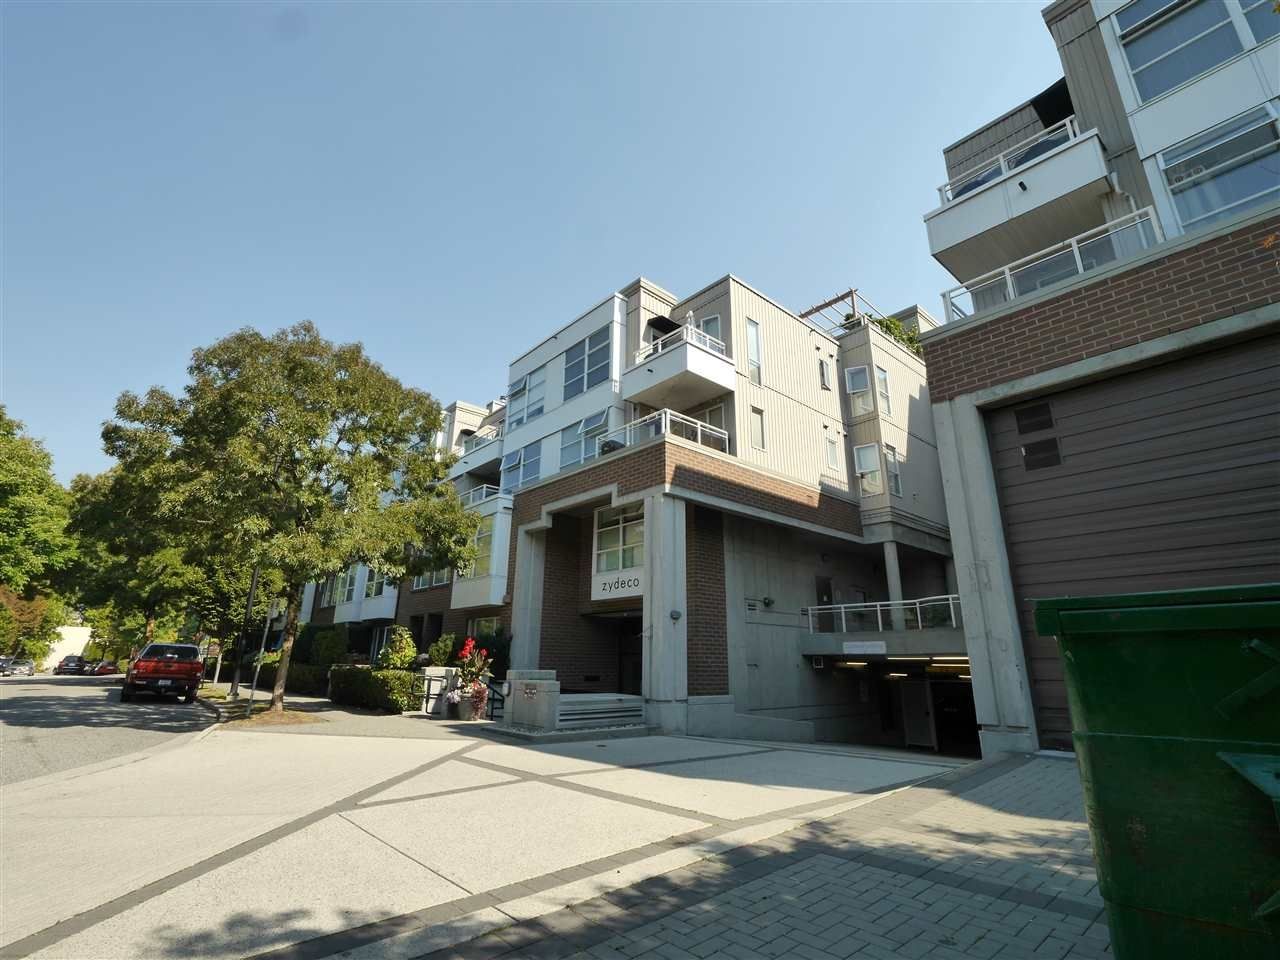 """Photo 4: Photos: 315 2768 CRANBERRY Drive in Vancouver: Kitsilano Condo for sale in """"ZYDECO"""" (Vancouver West)  : MLS®# R2566057"""